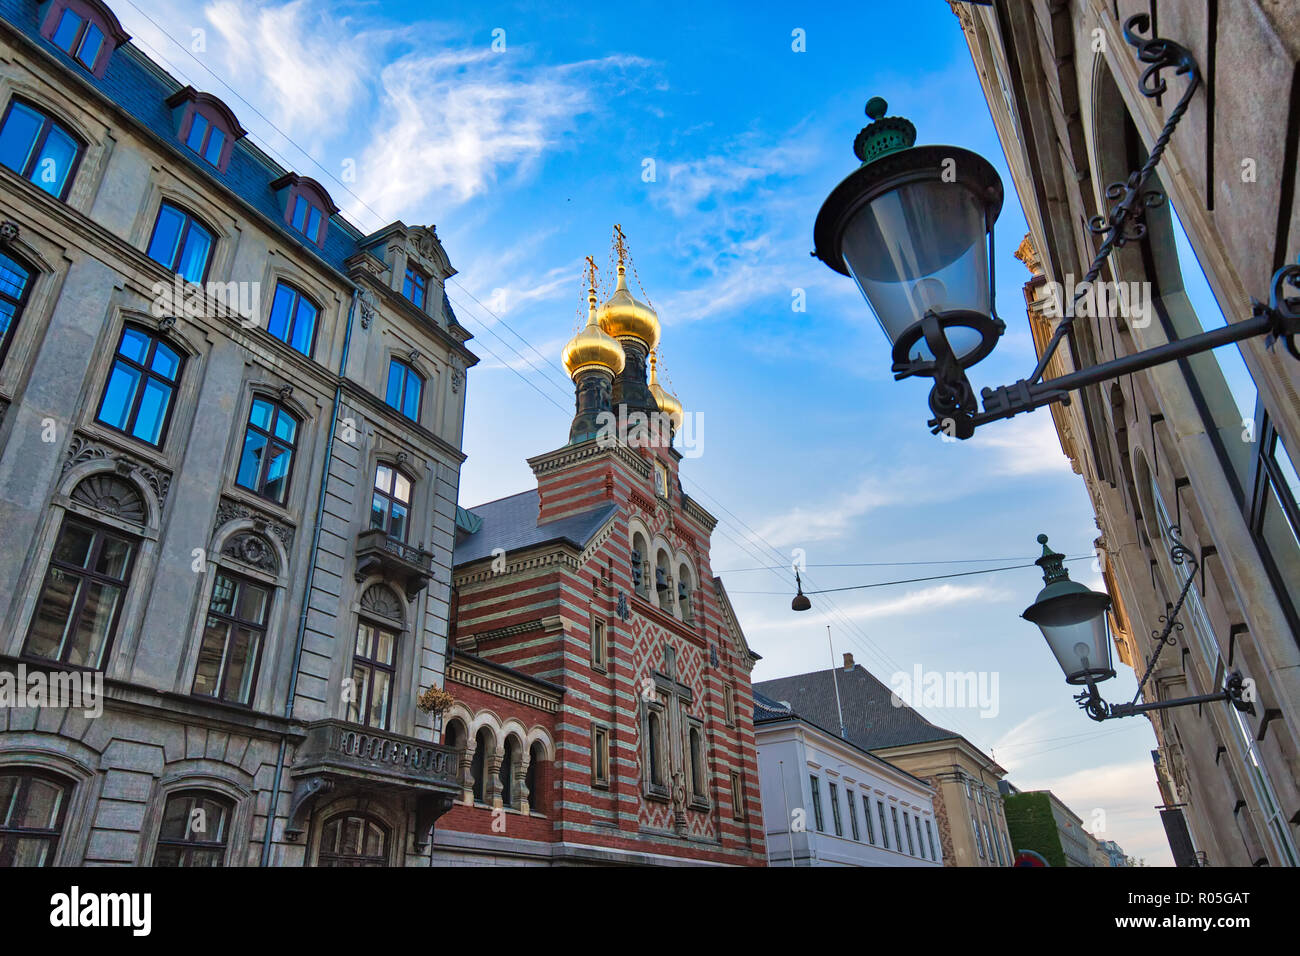 Russian Orthodox Alexander Nevskij (Nevsky) church located in historic center - Stock Image